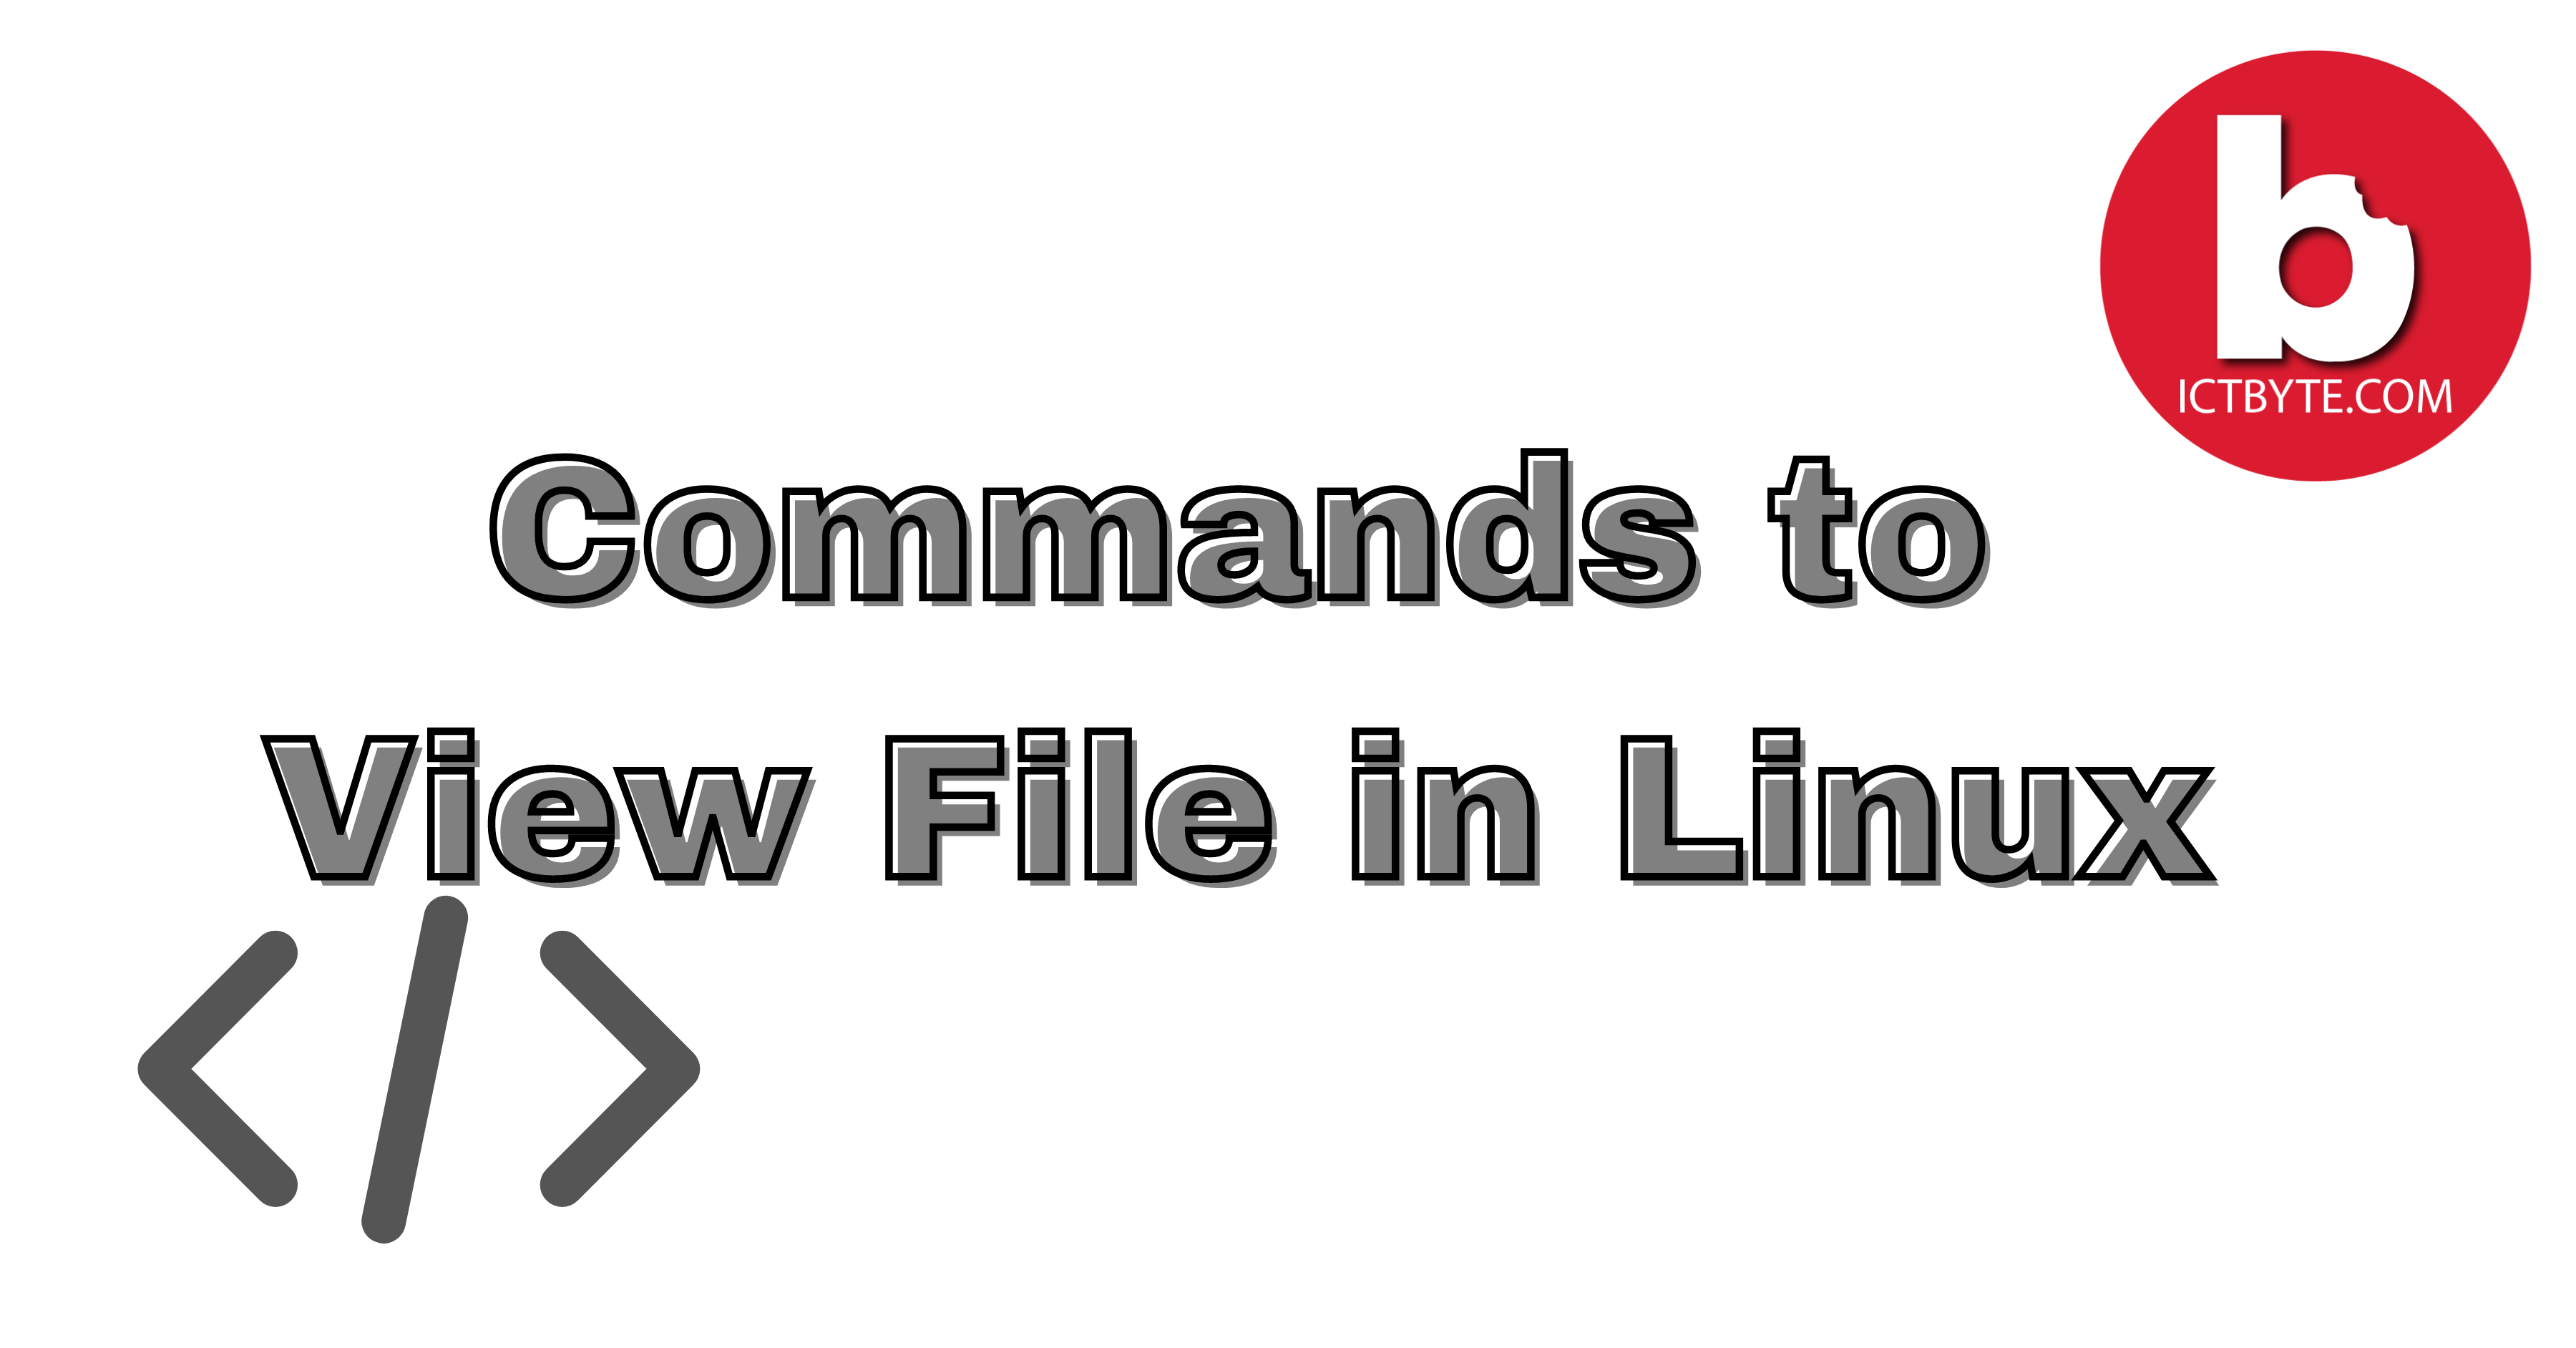 Commands to View File in Linux